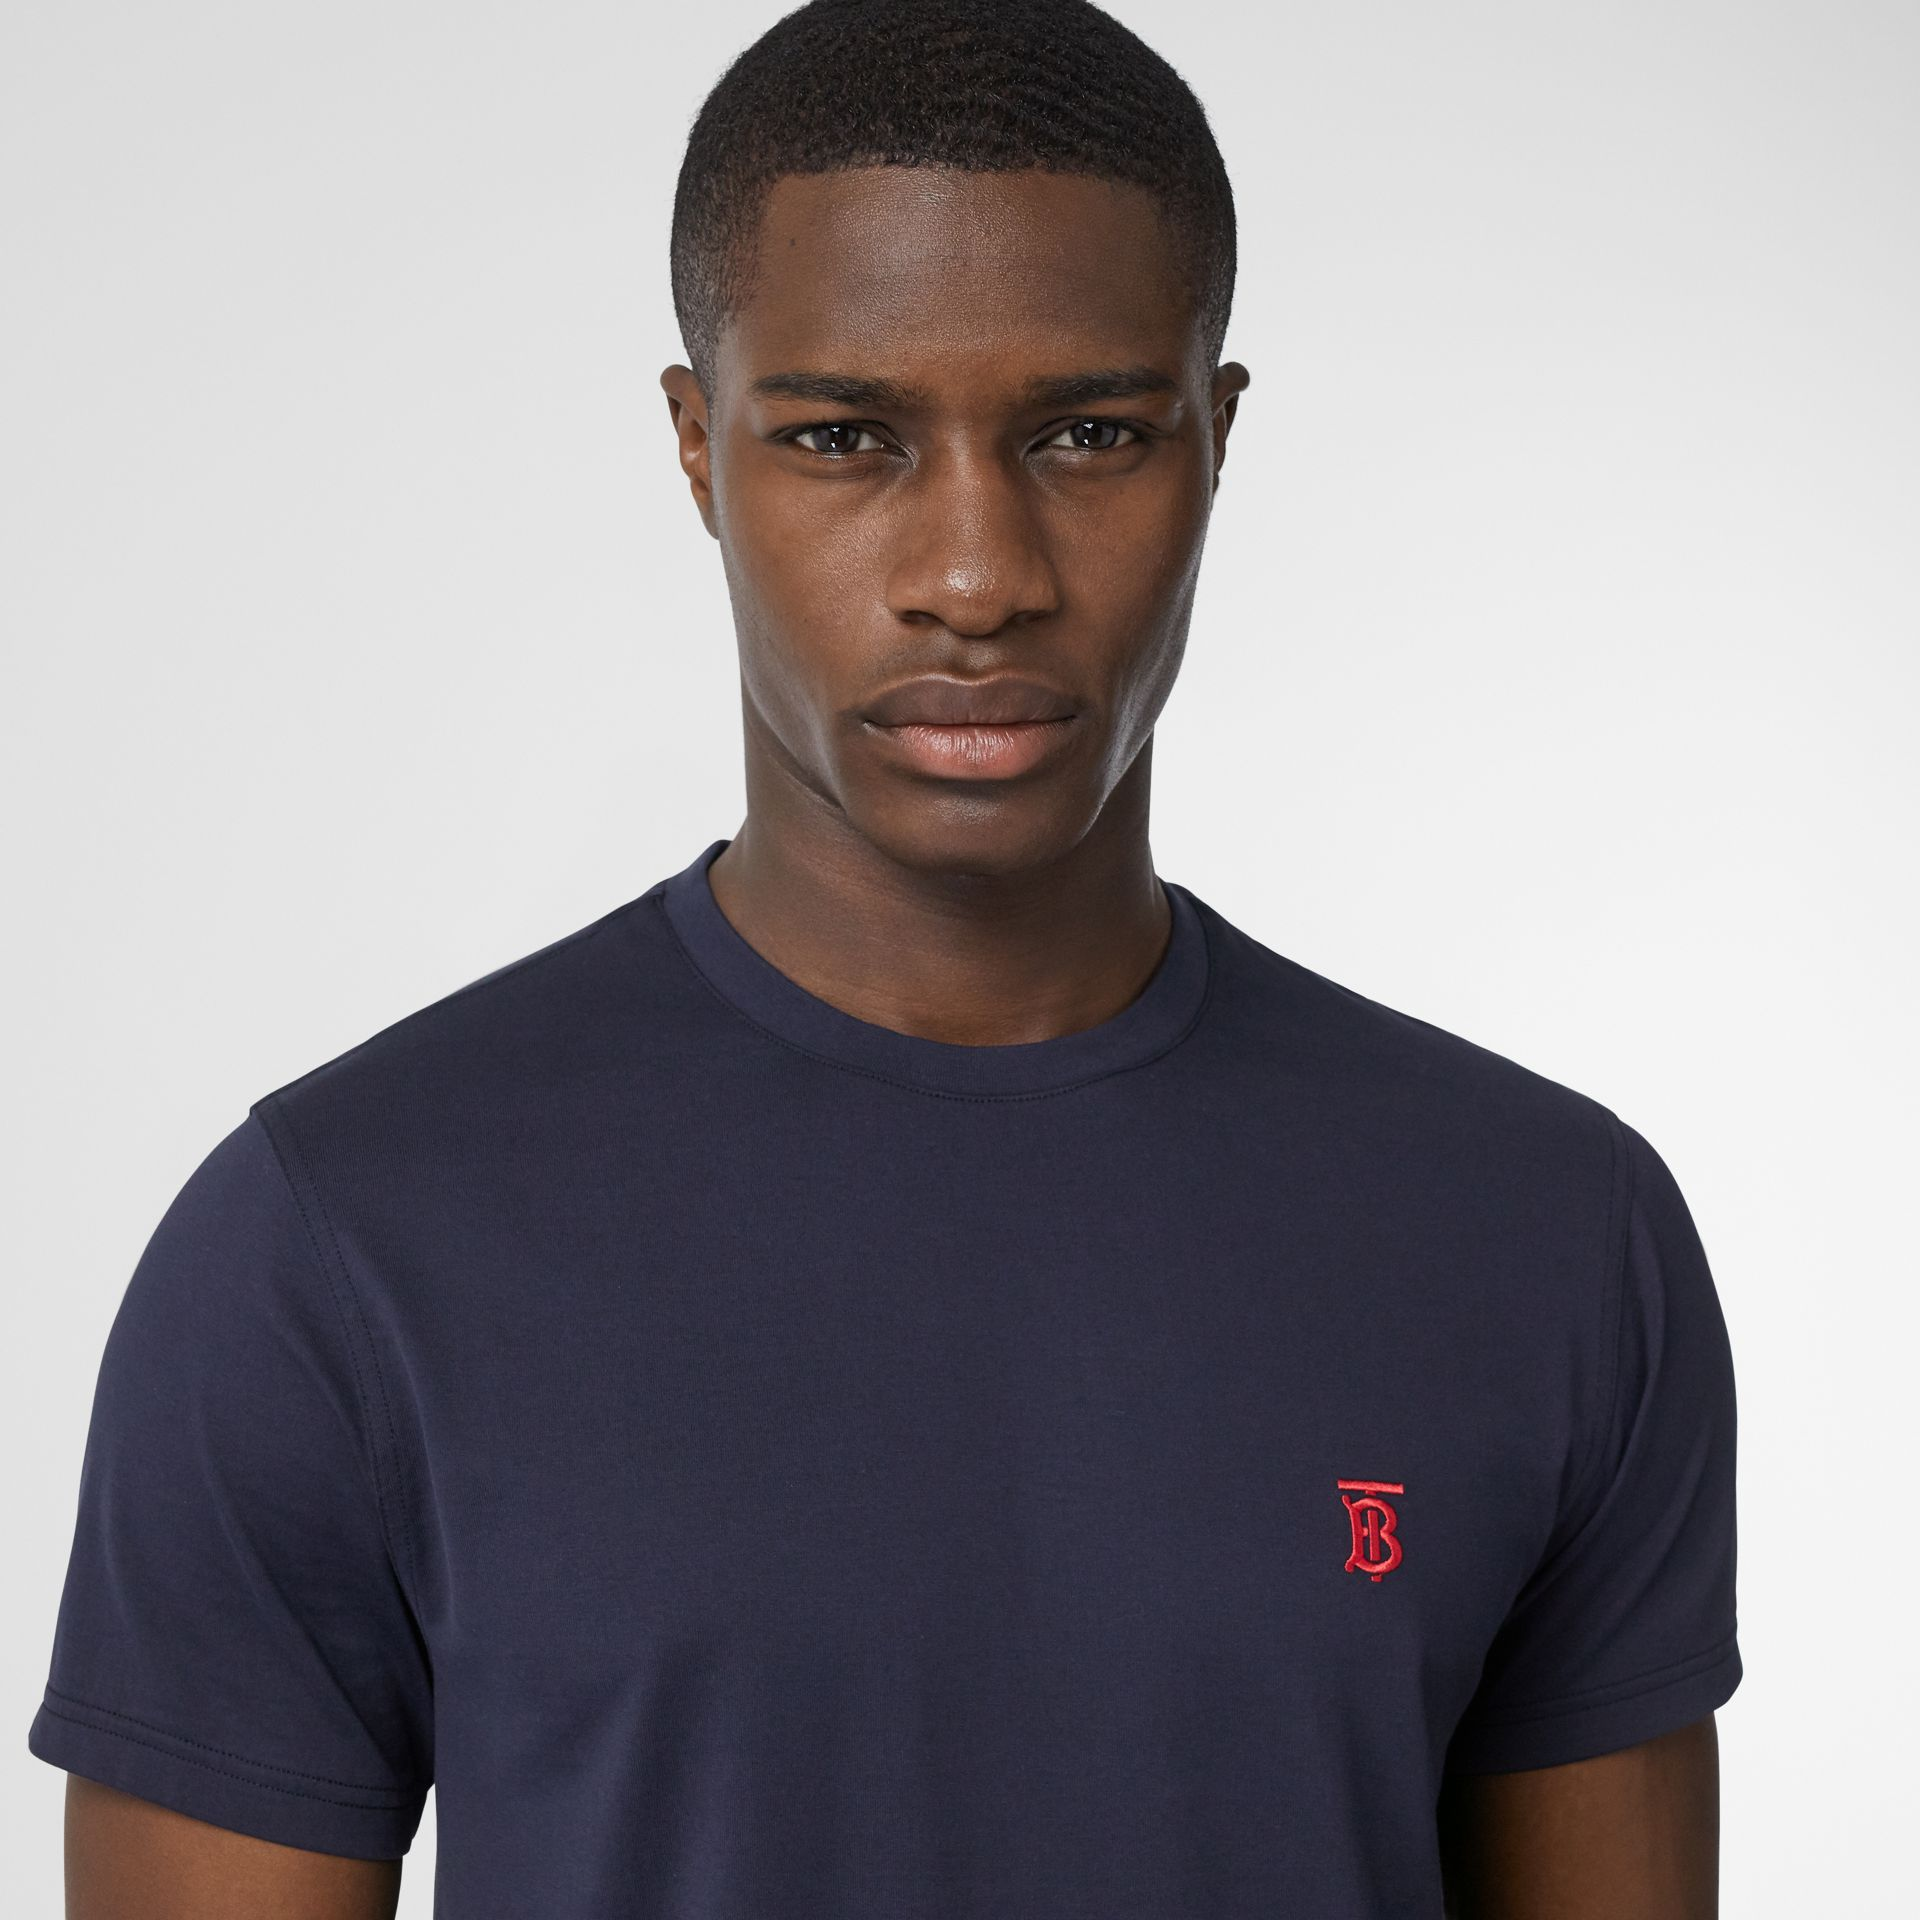 Monogram Motif Cotton T-shirt in Navy - Men | Burberry United Kingdom - gallery image 1